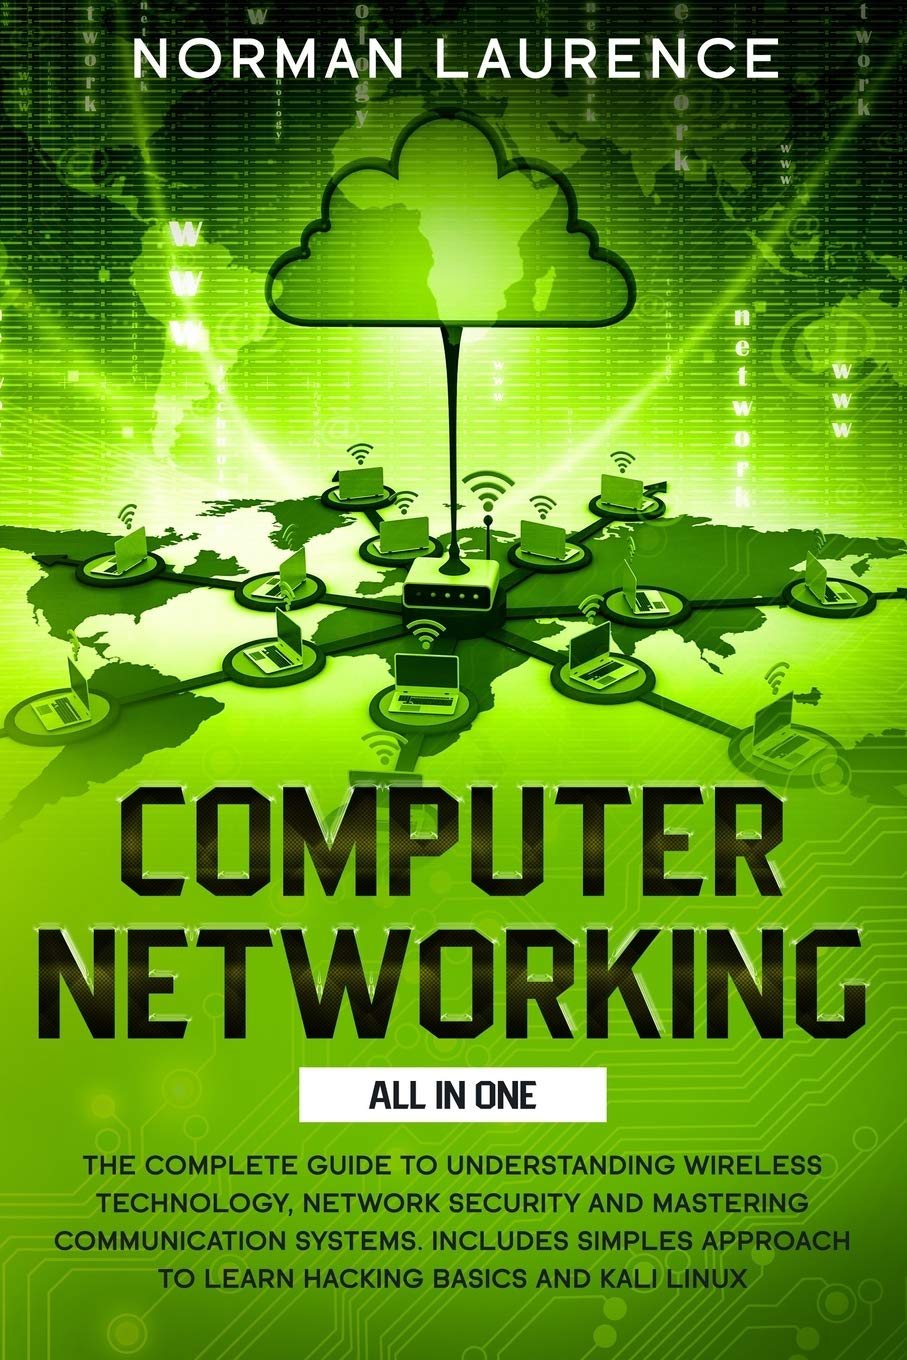 Computer Networking: The Complete Guide to Understanding Wireless Technology, Network Security and Mastering Communication Systems. Includes simples approach to Learn Hacking Basics and Kali Linux.